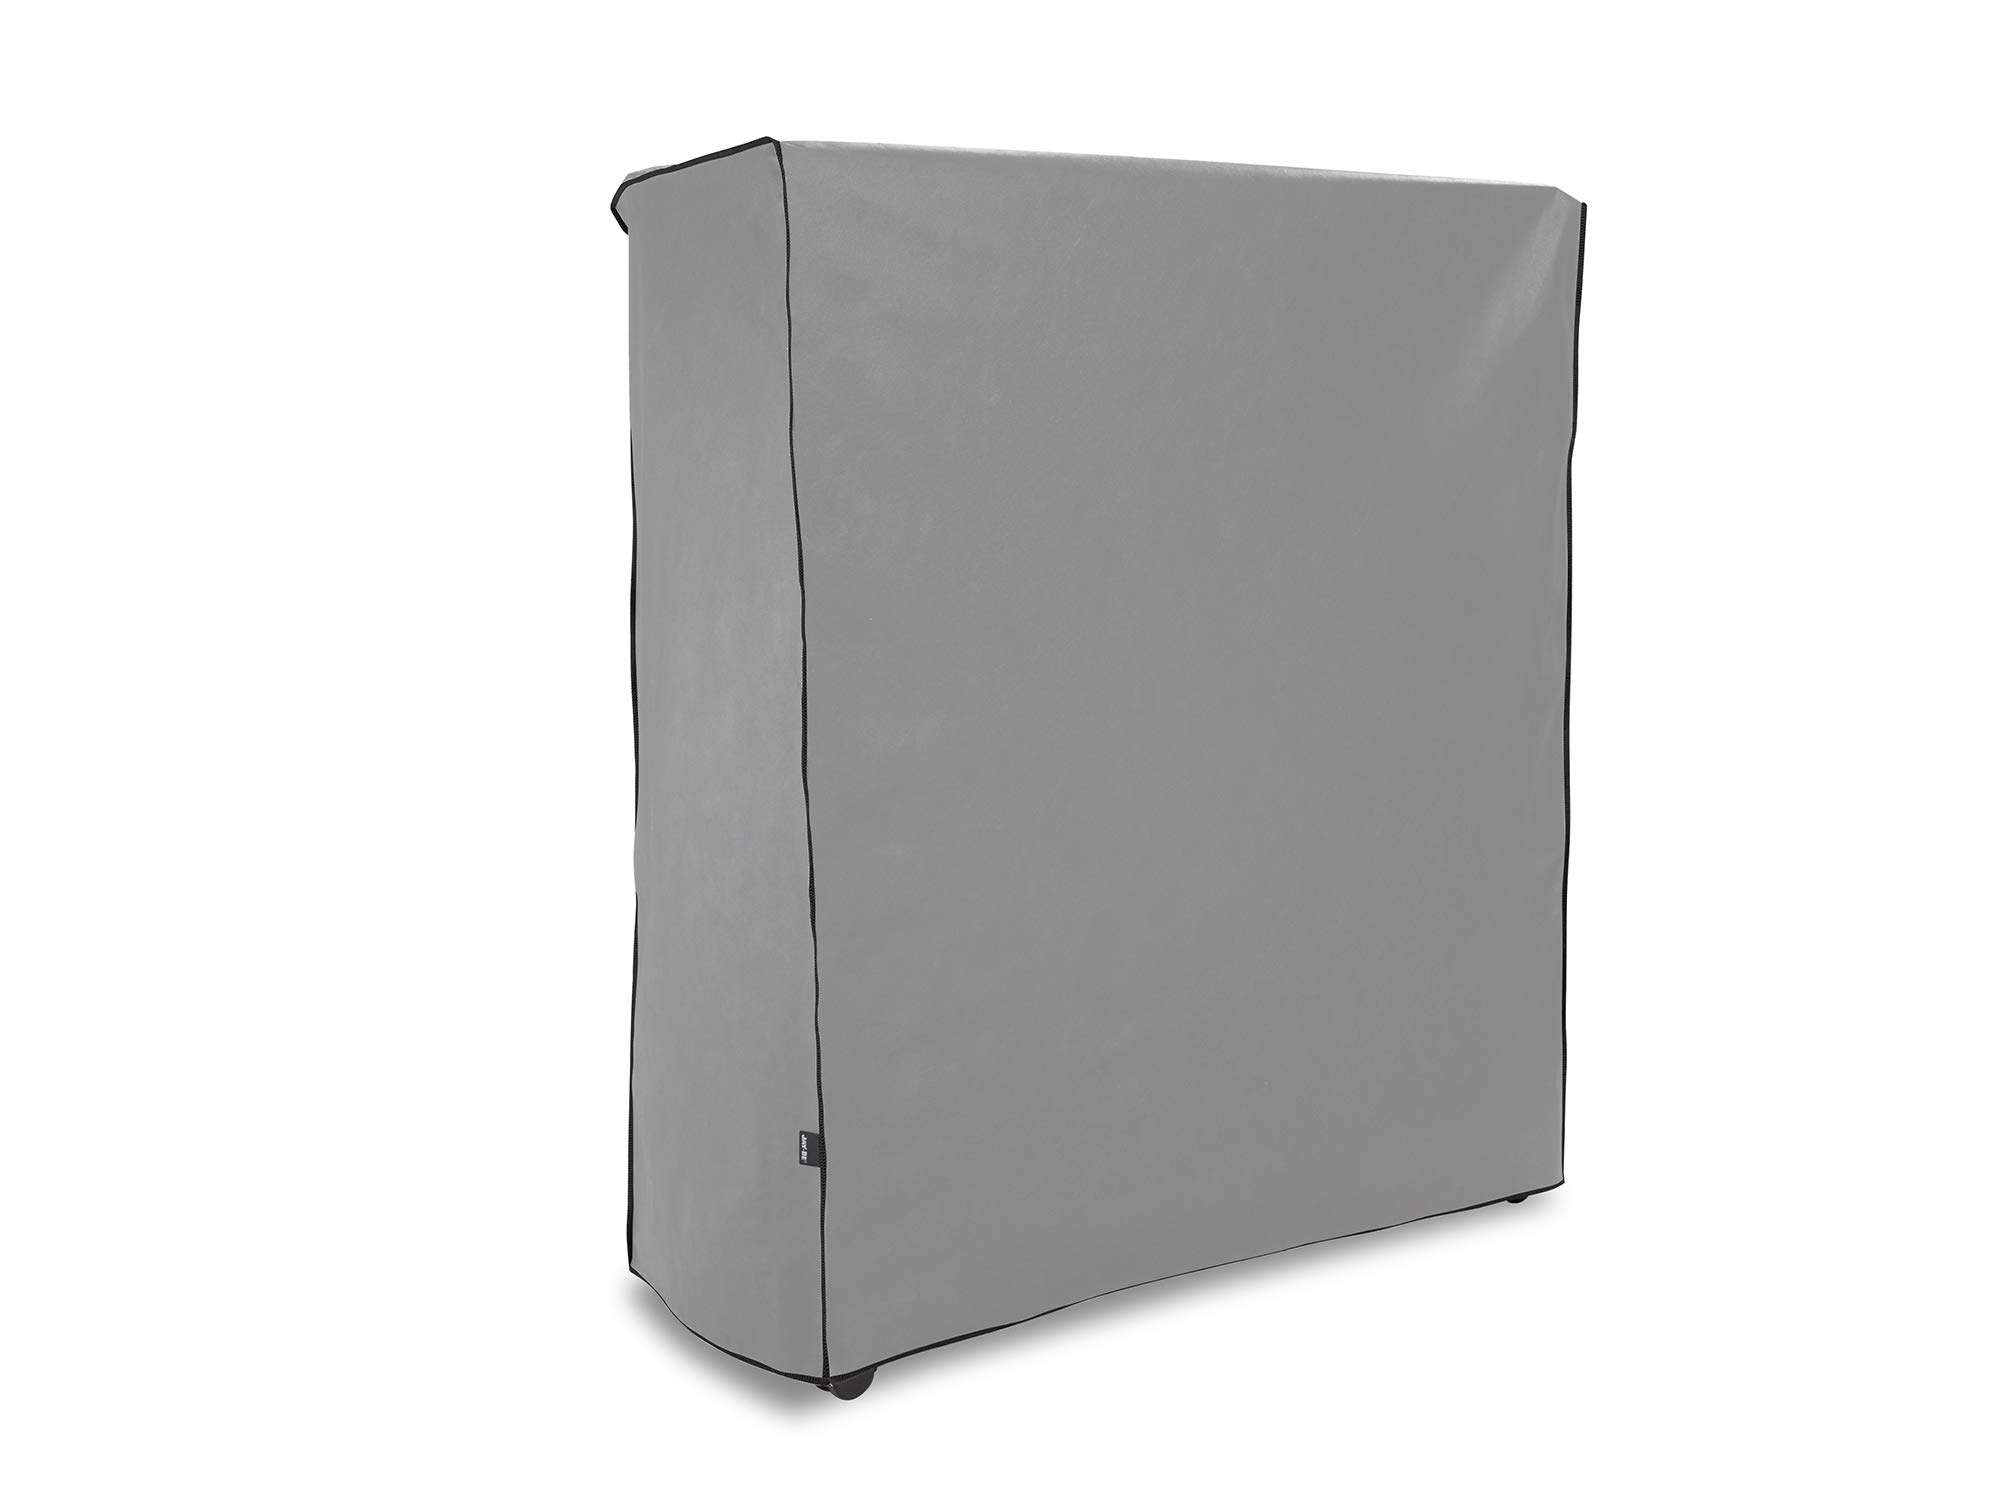 Jay-Be Folding Bed Storage Cover Exclusively for J-Bed